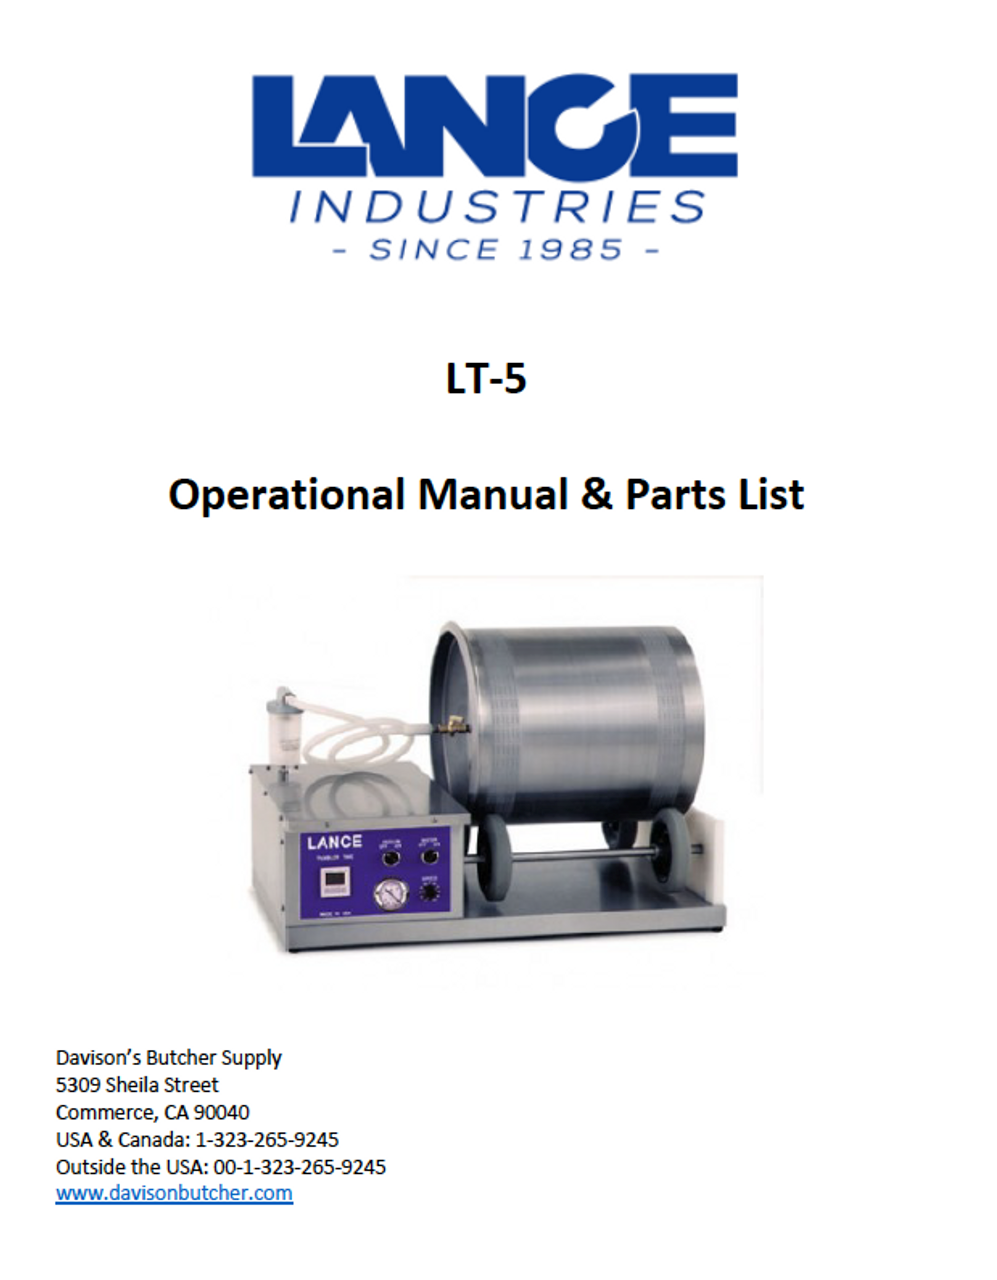 LT-5 - Lance Tumbler Operational Manual & Parts List